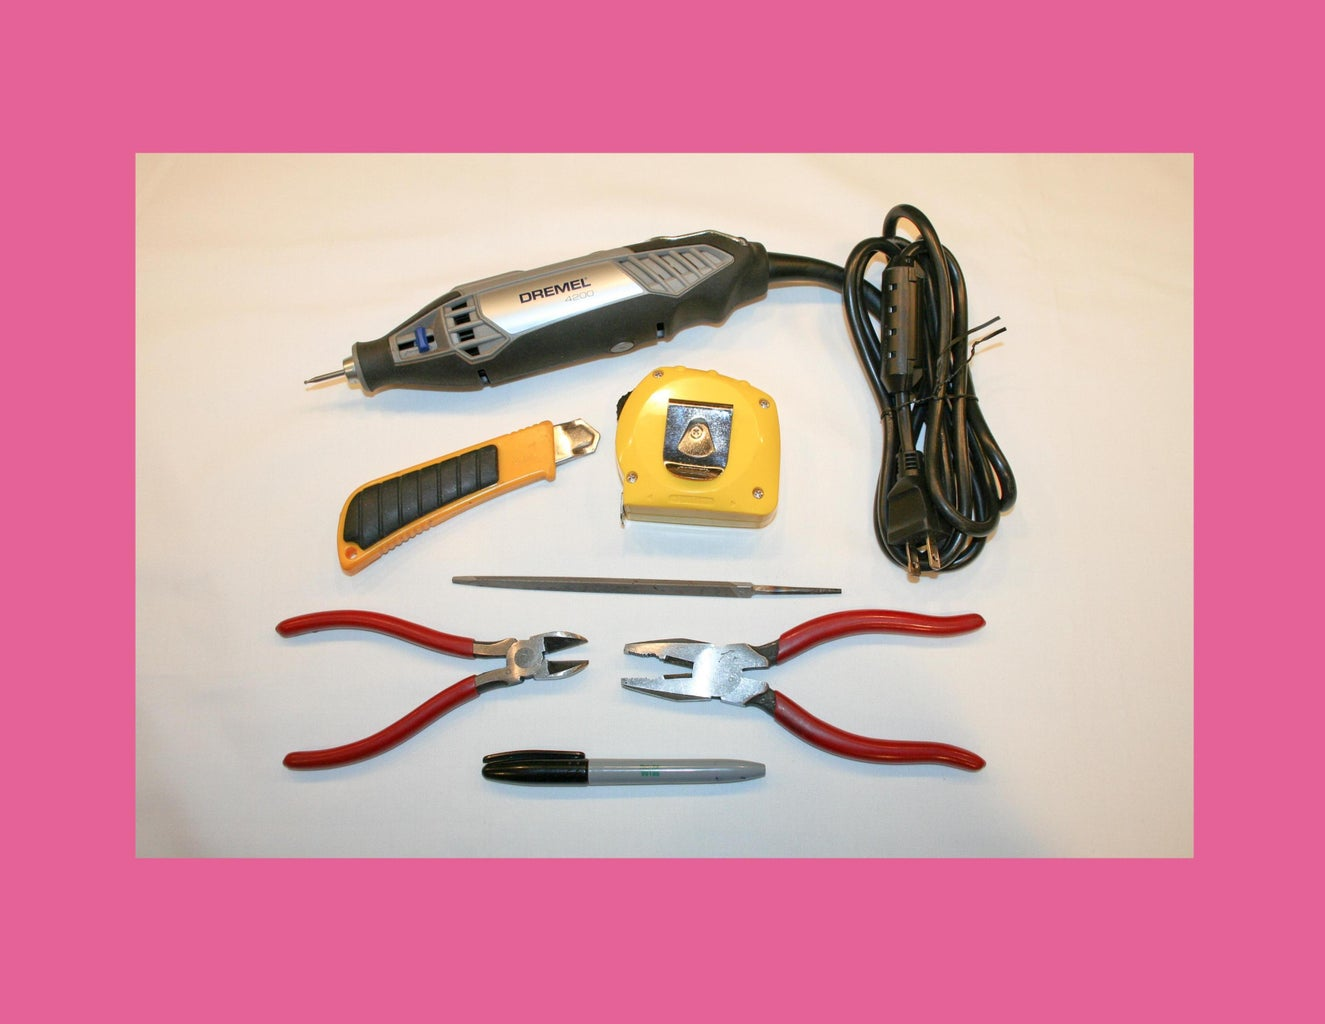 And the Following TOOLS: